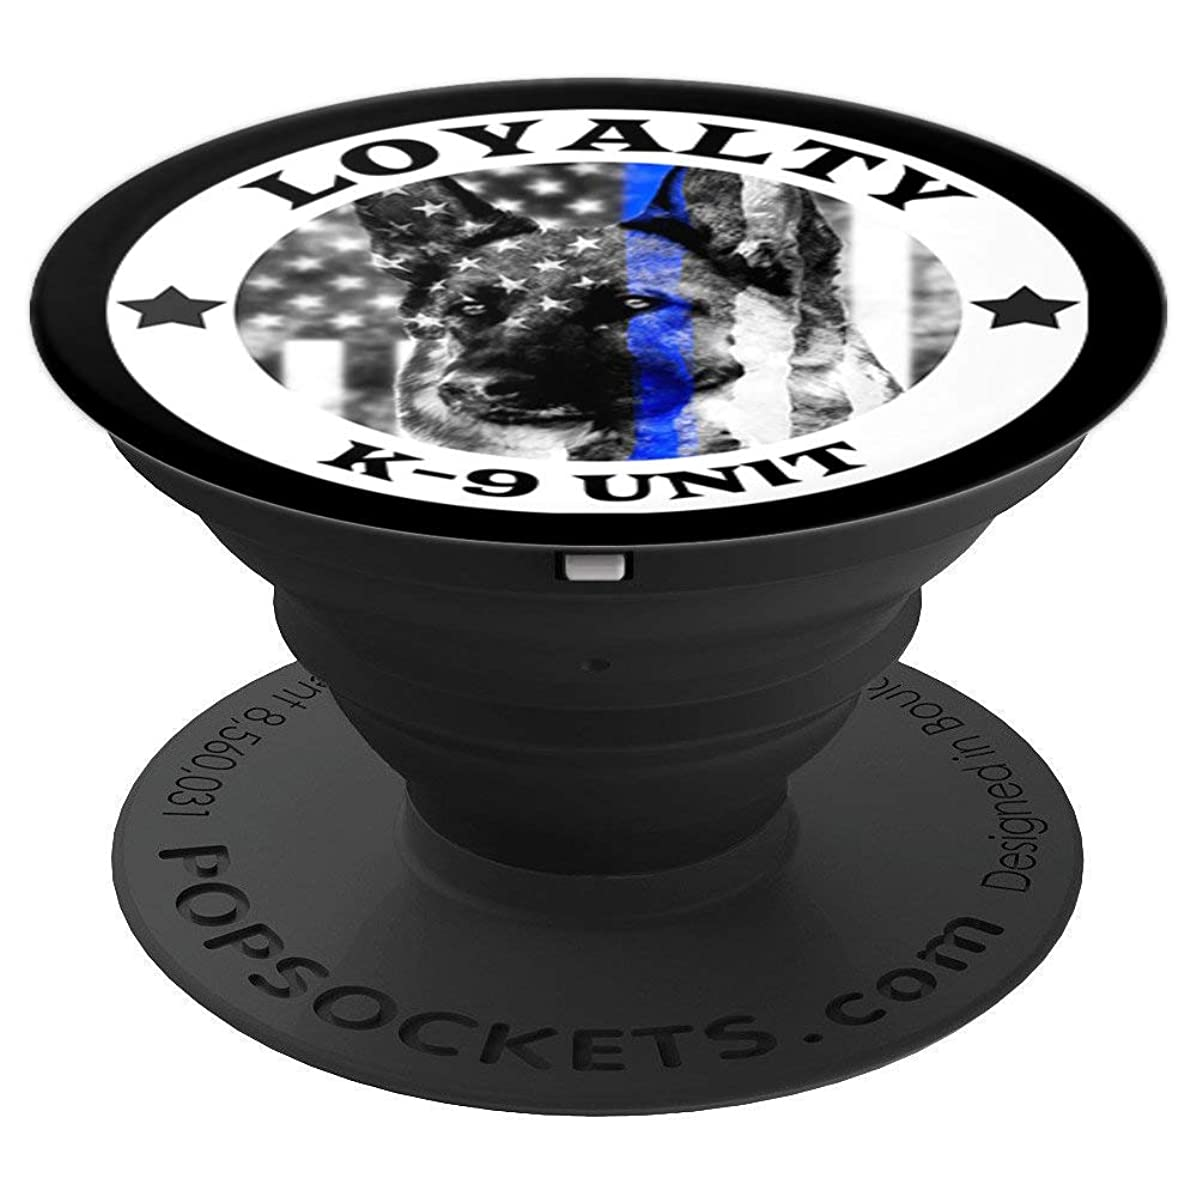 K9 Unit Loyalty Thin Blue Line Canine Officer GSD Gifts Men - PopSockets Grip and Stand for Phones and Tablets